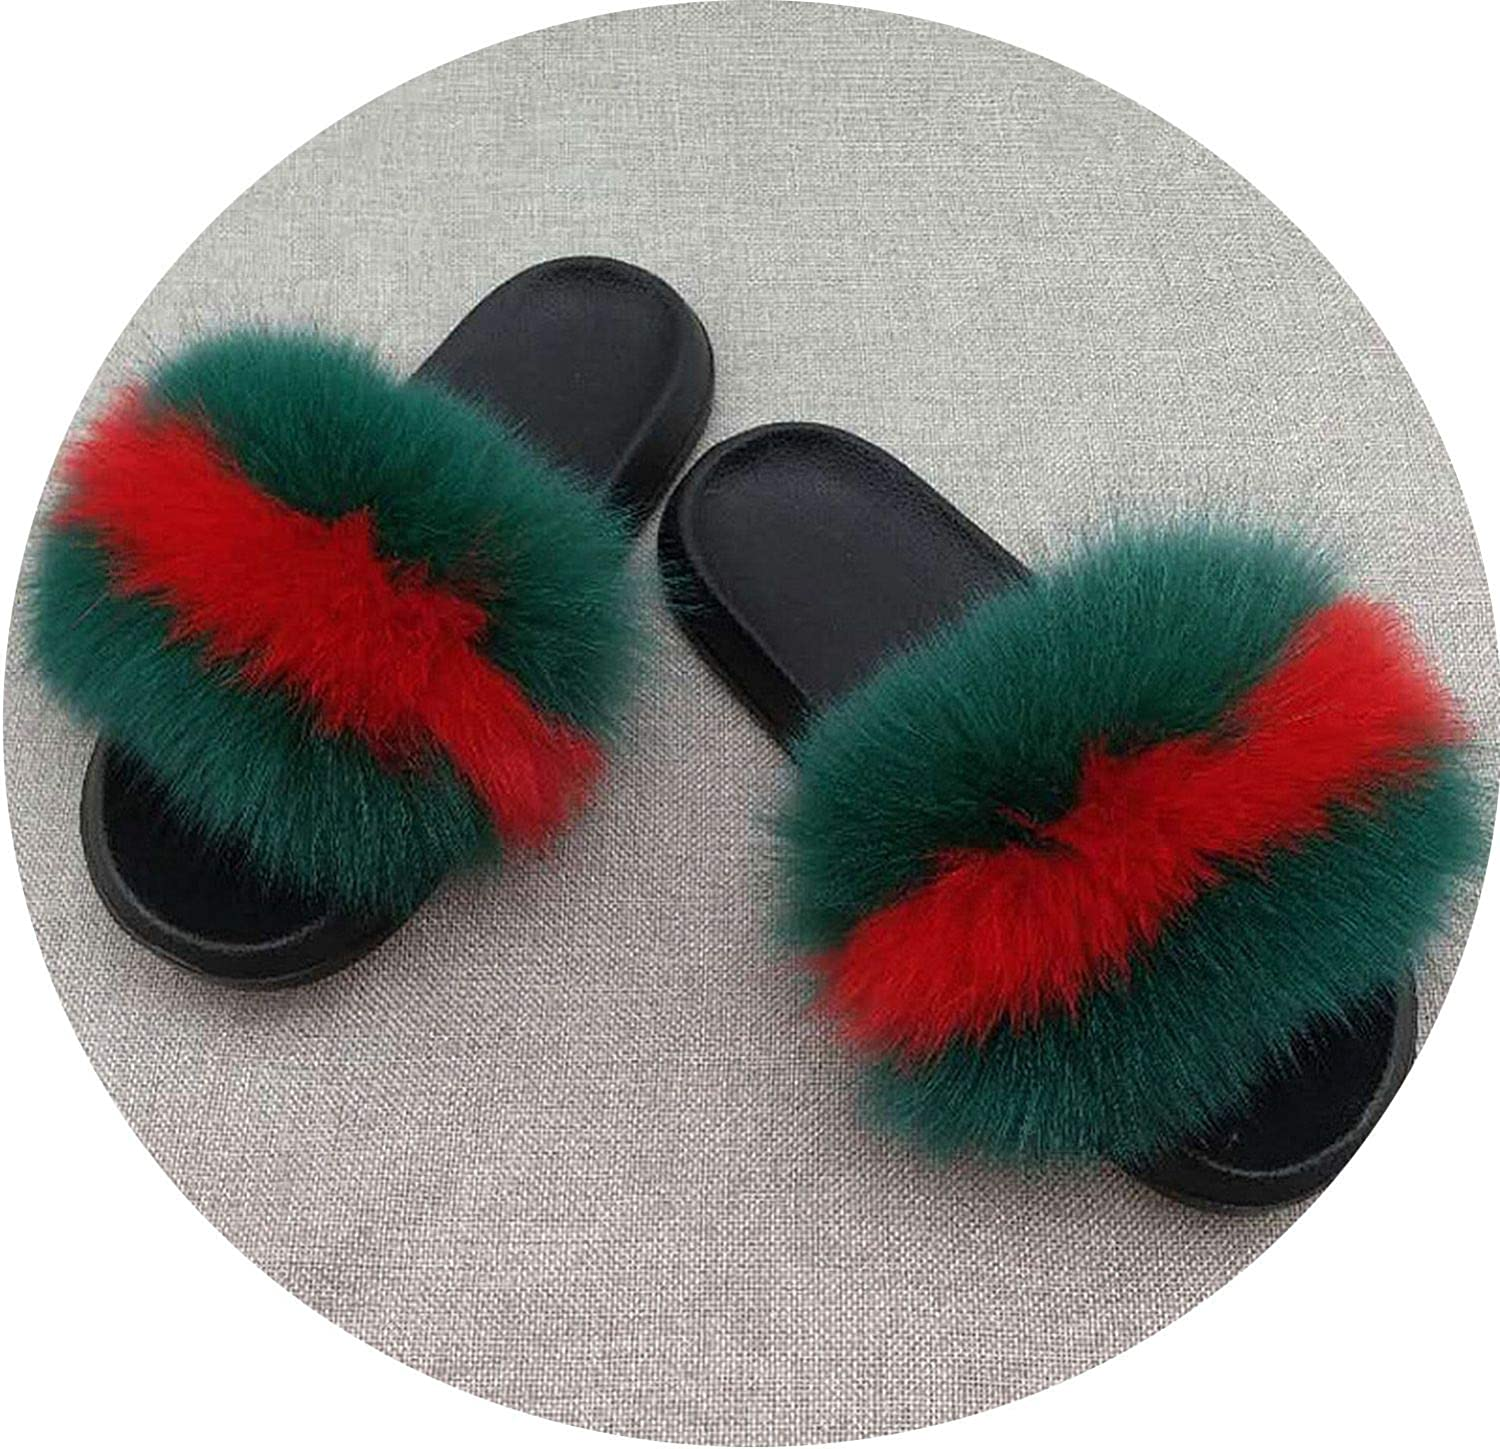 Ferdinanding Real Fur Slippers Women Fox Home Fluffy Sliders Comfort with Feathers Furry Summer Flats Raccoon Ladies shoes Large Size 45 Home,Fox Hair Mixed,13